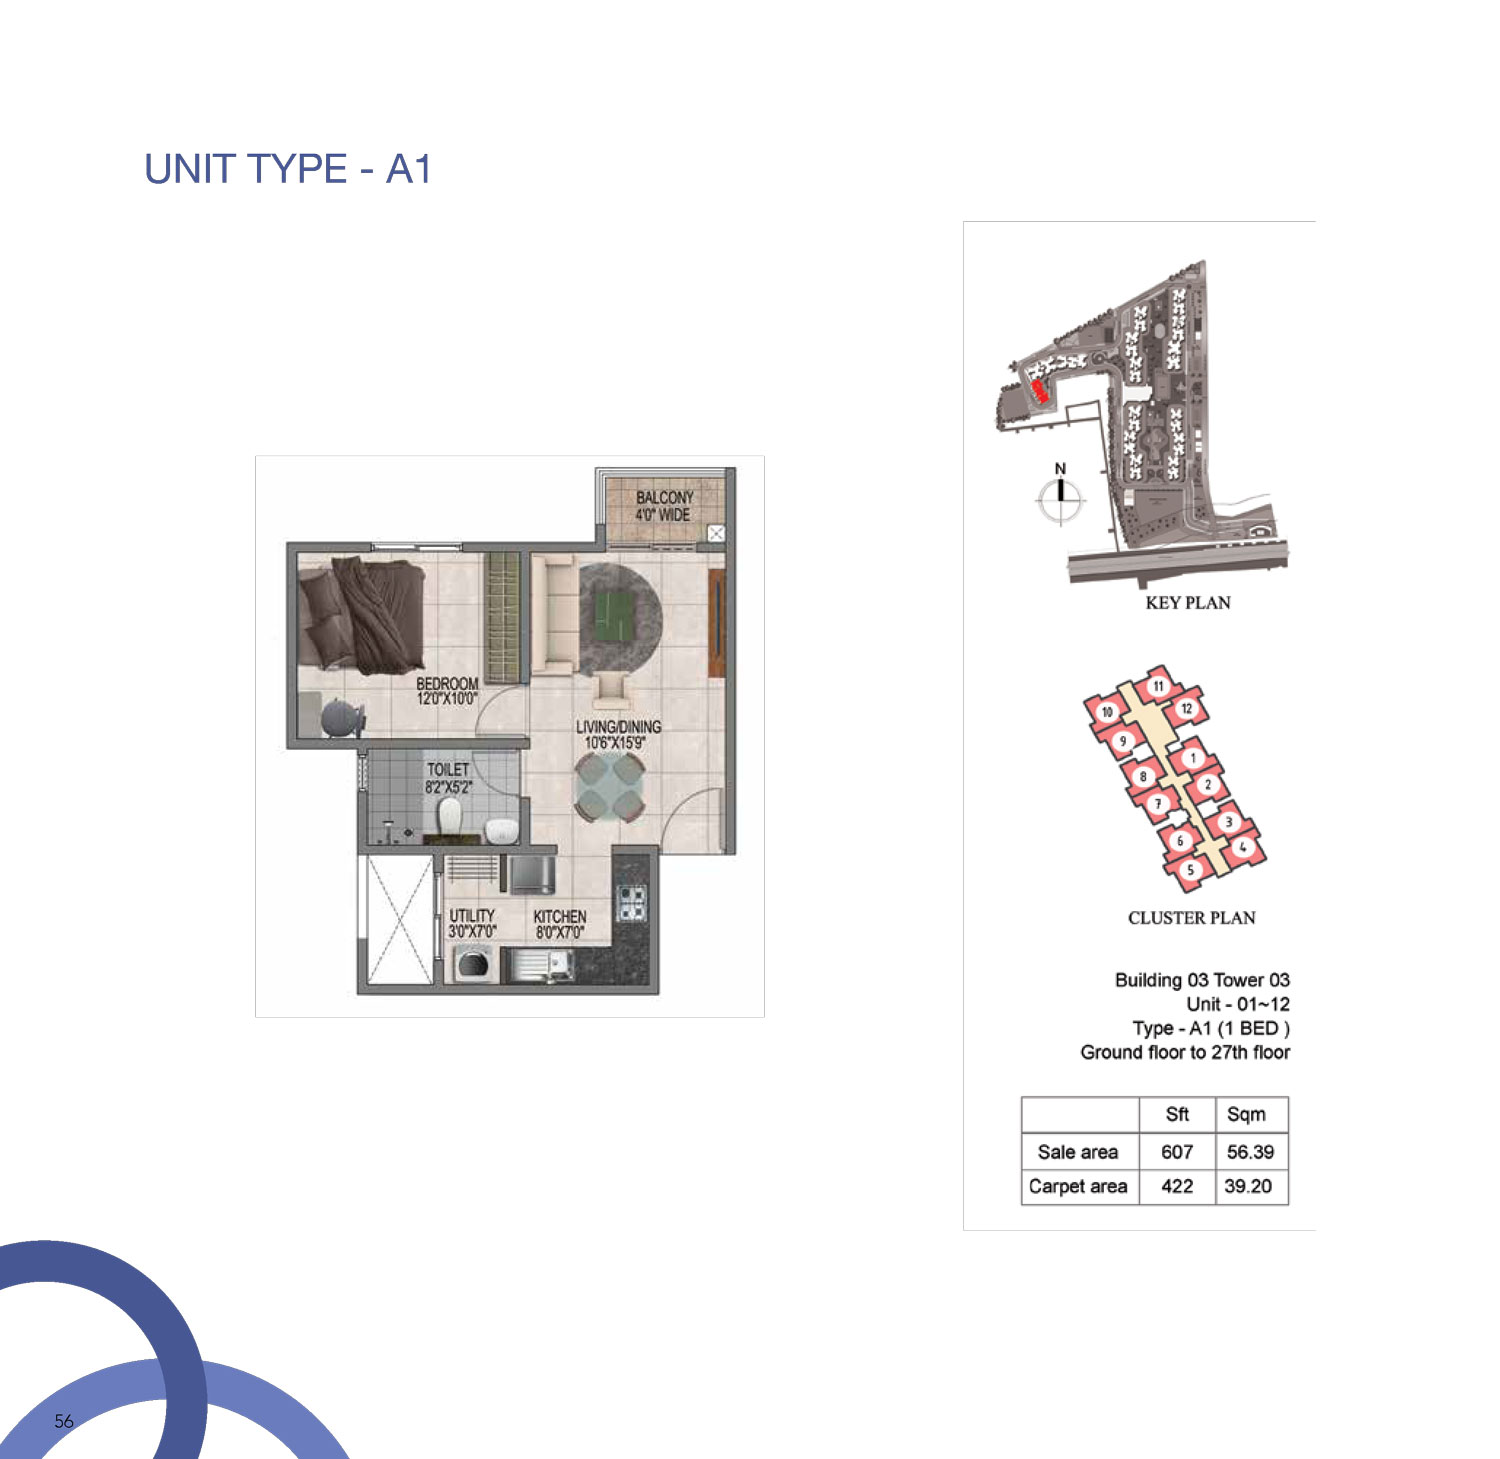 Type A1 - 607 Sq Ft